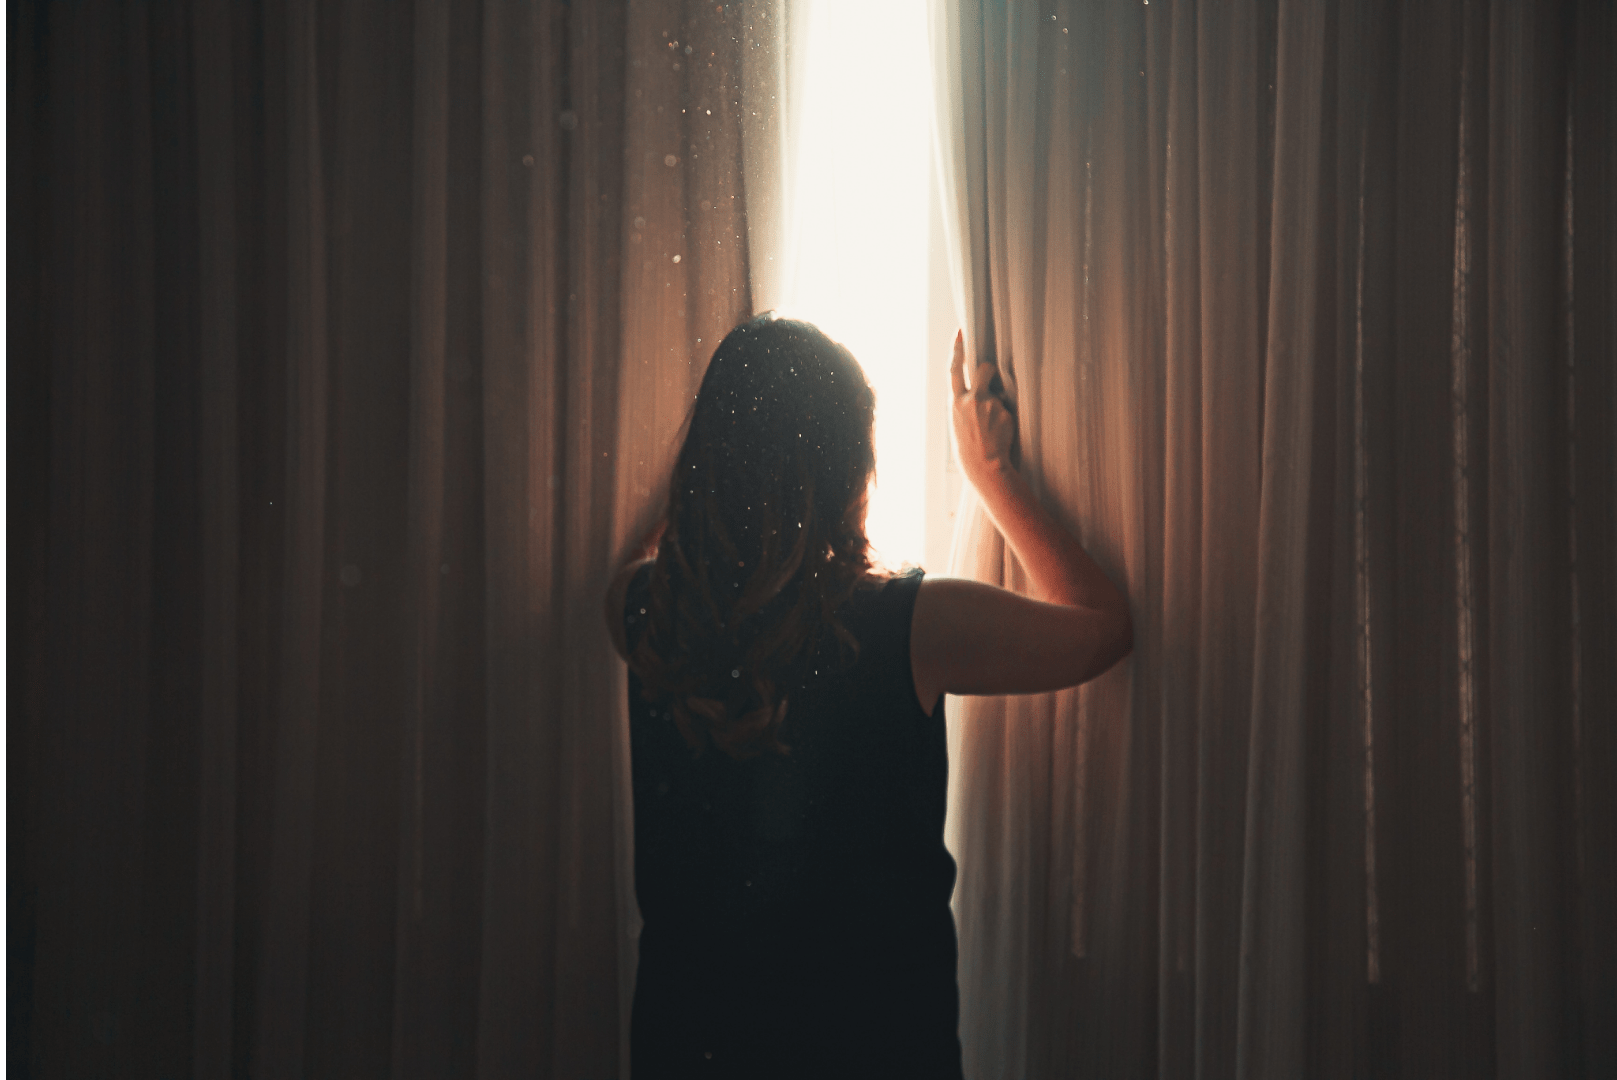 Curing depression with CBD, woman with depression peeking in the window